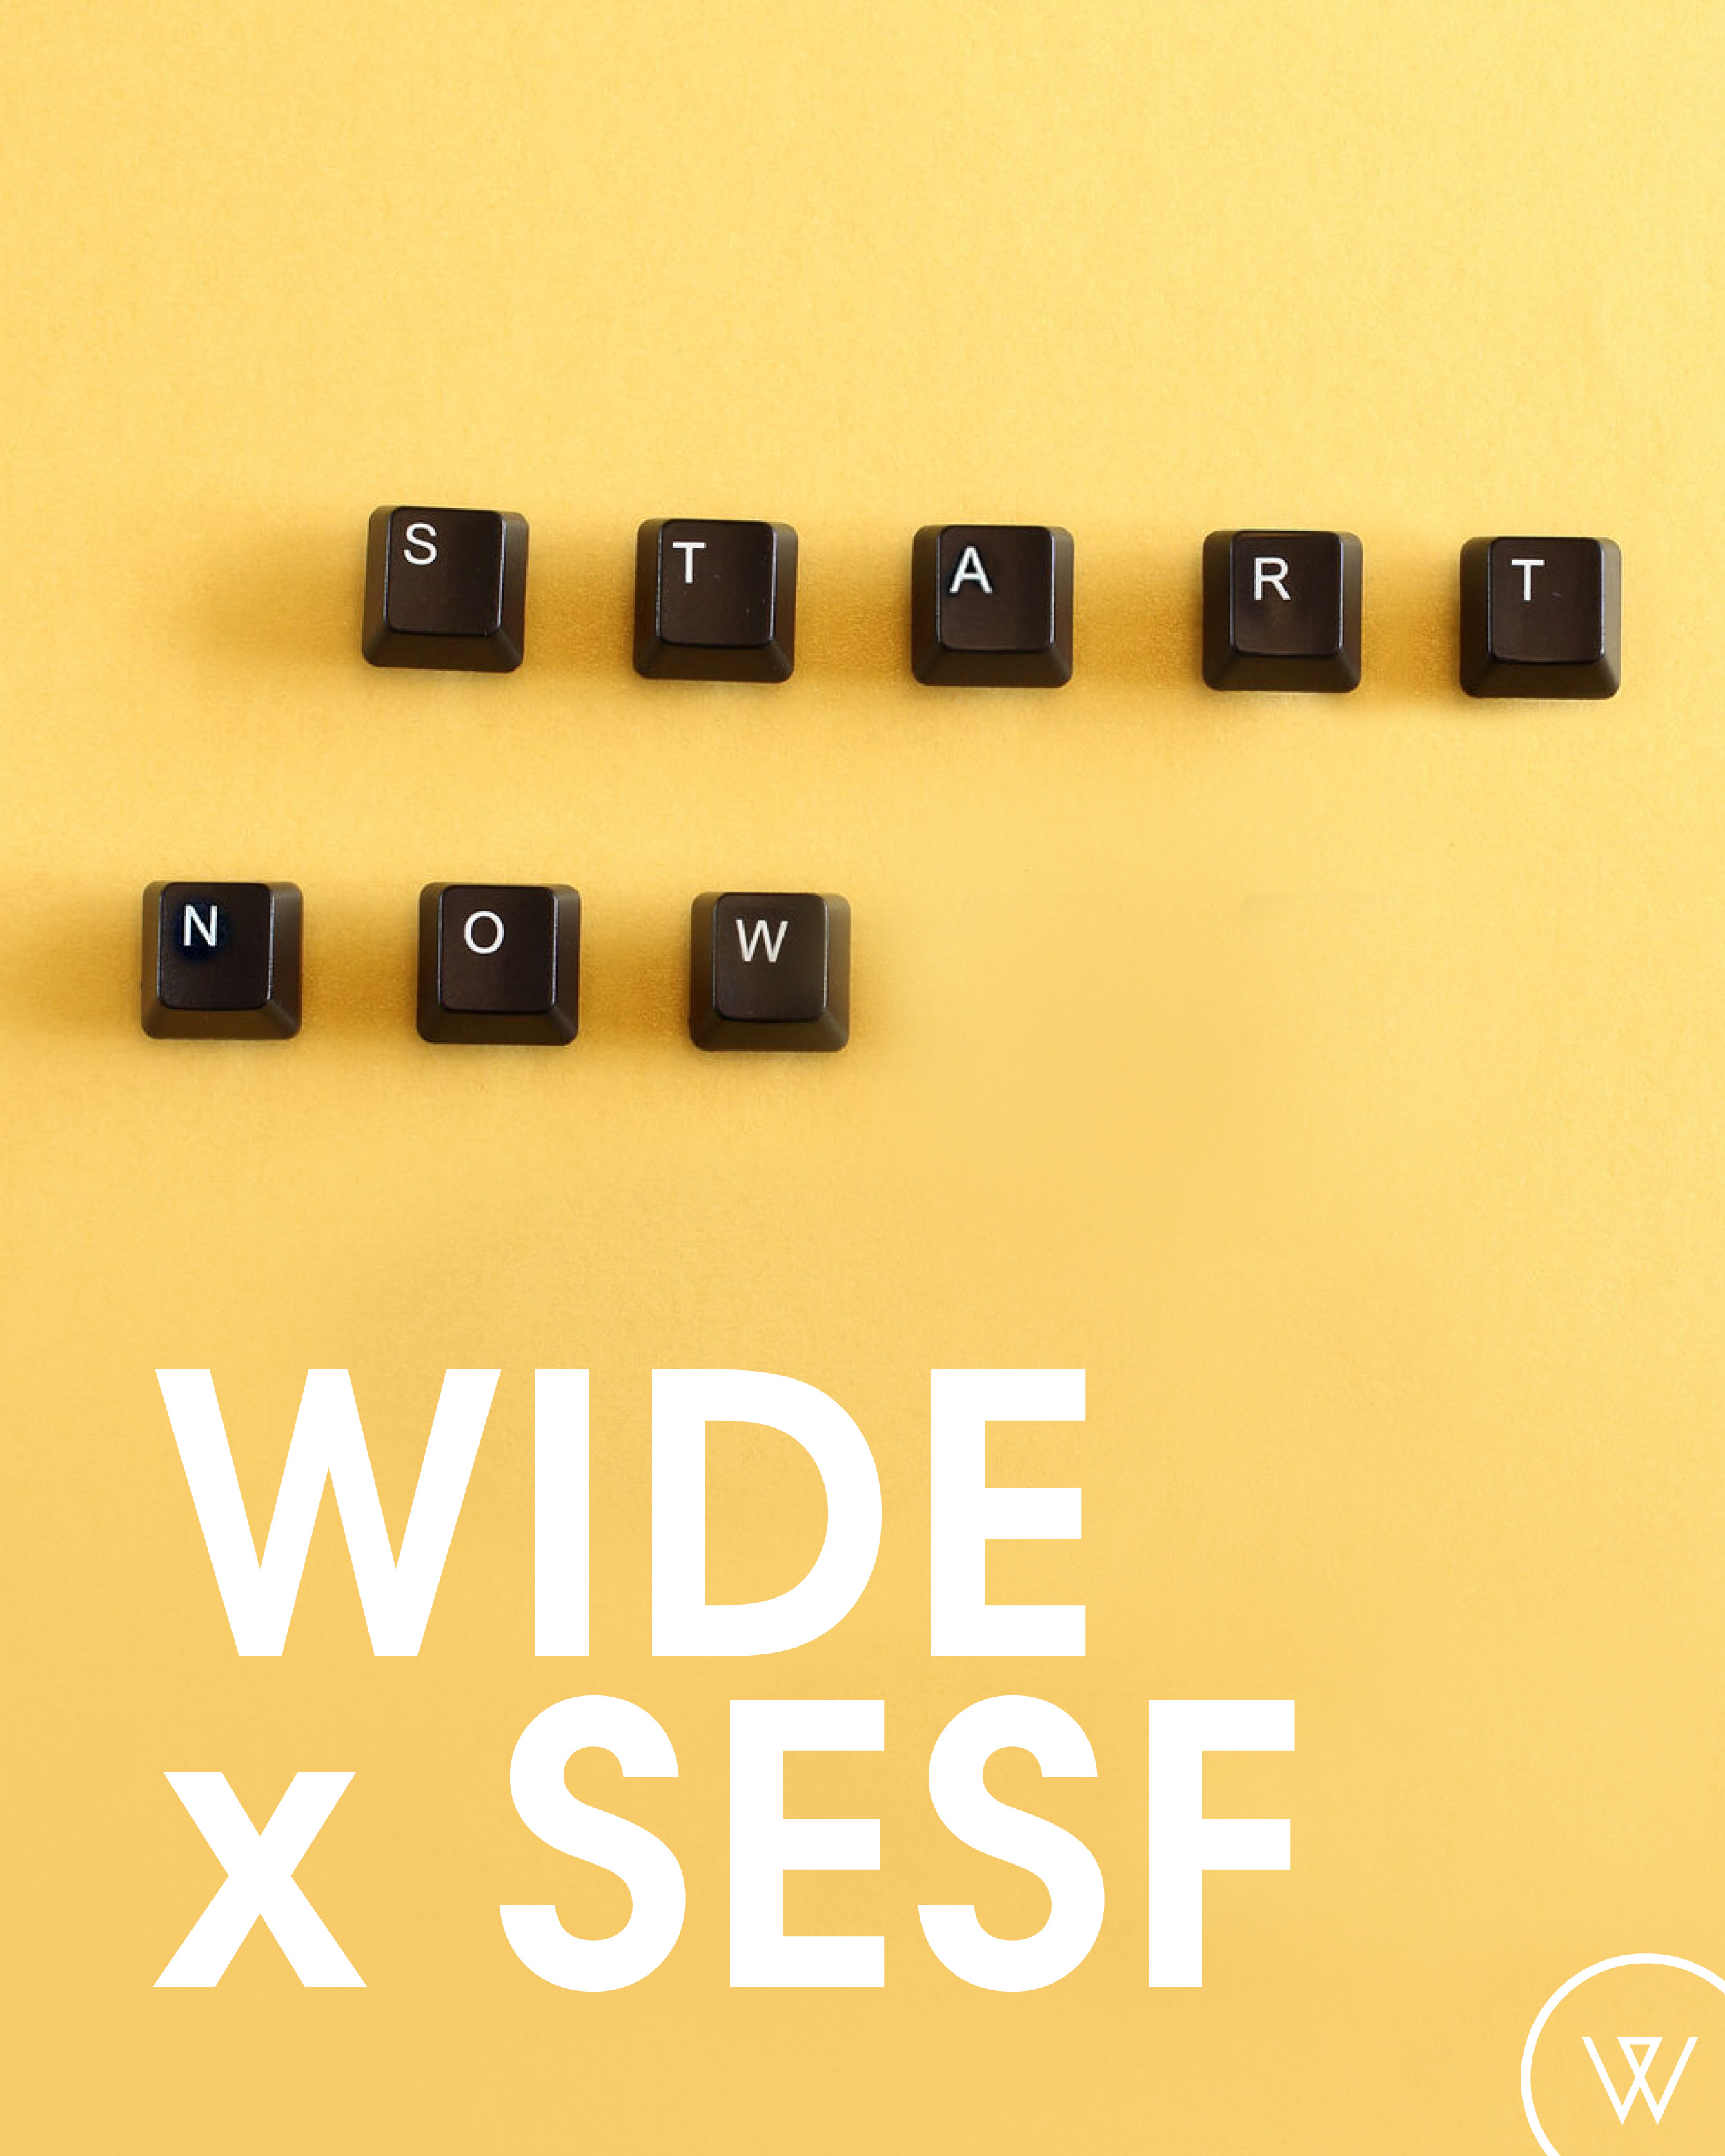 WIDE X SESF